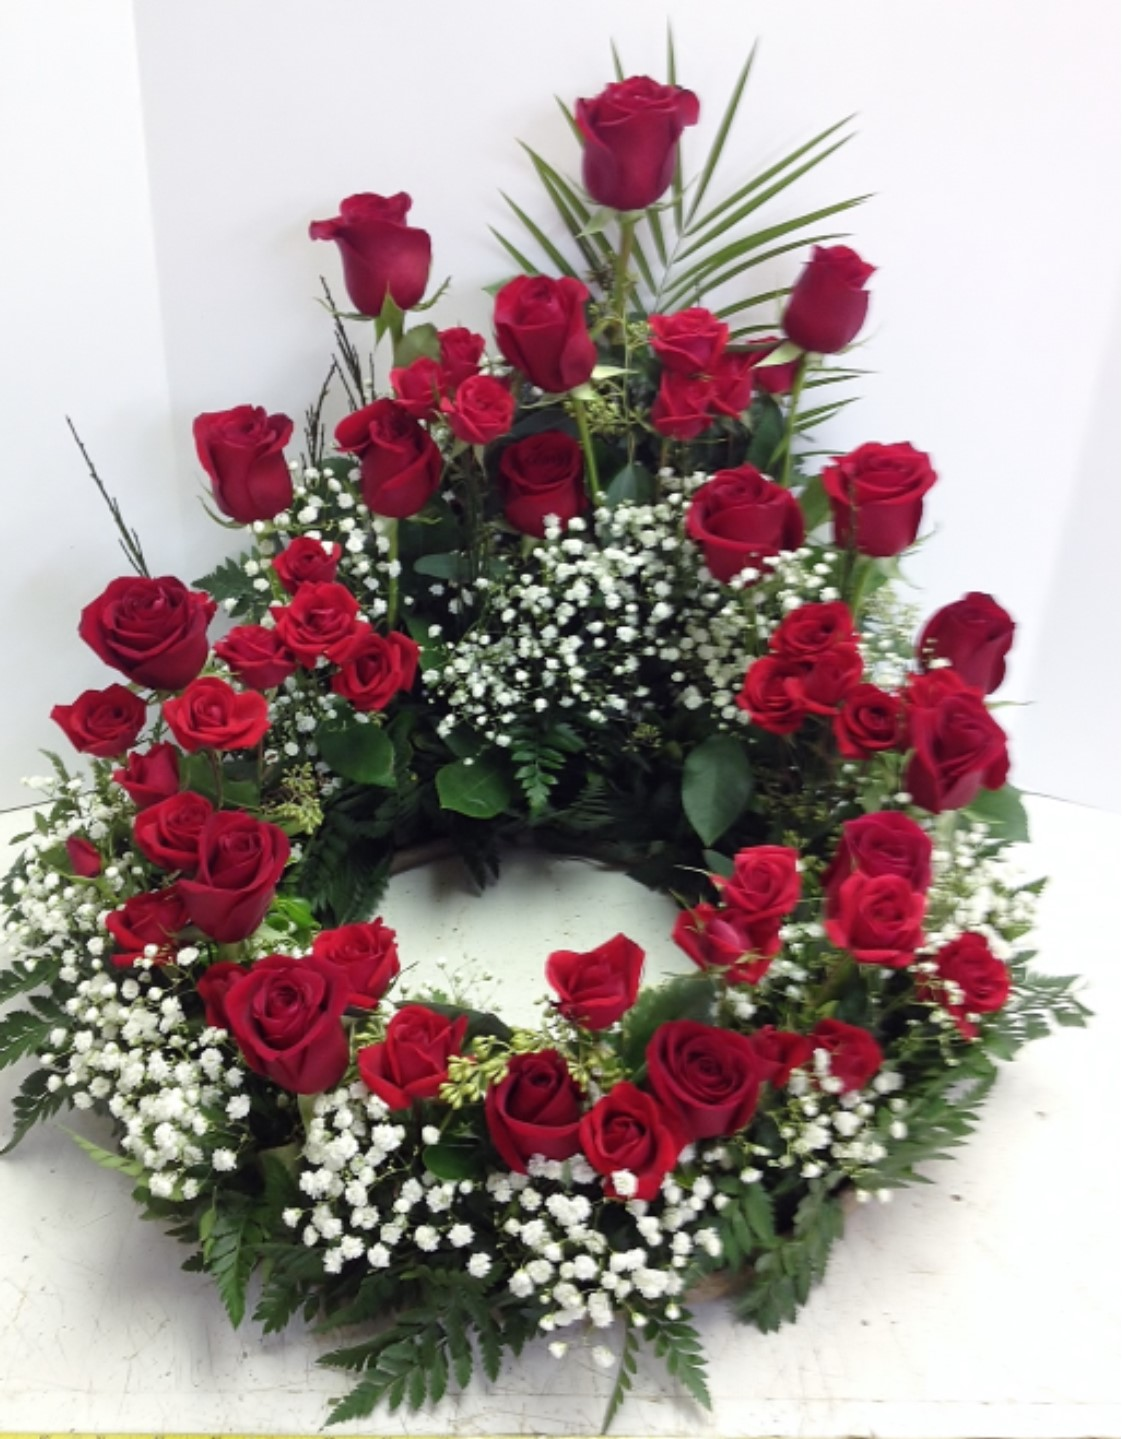 Roses Surround the Urn